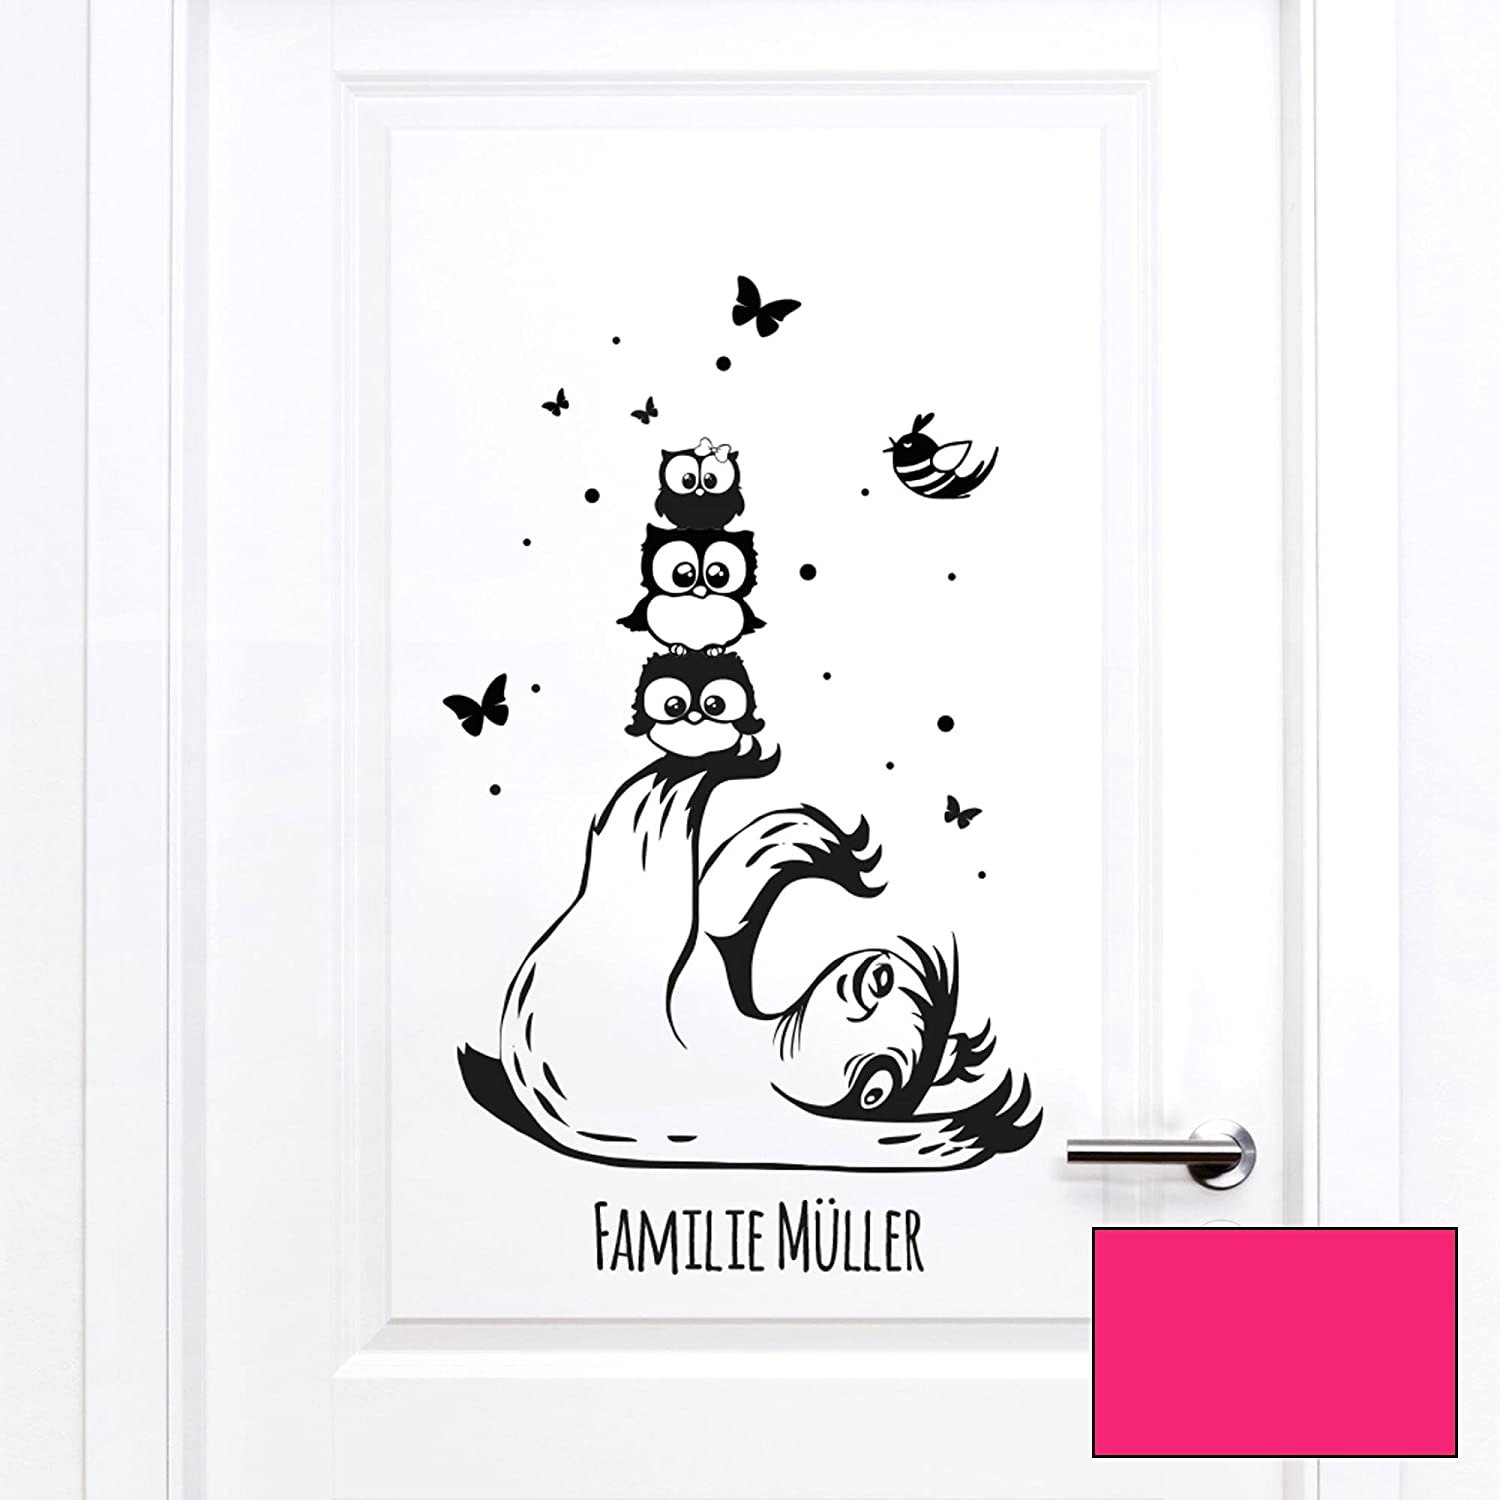 Ilka Parey Wandtattoo Welt Letterbox Sticker Sloth With Owls And Name M2191 Without Letterbox Selected Colour Pink Selected Size M 18 Cm Wide X 32 Cm High Amazon Co Uk Kitchen Home